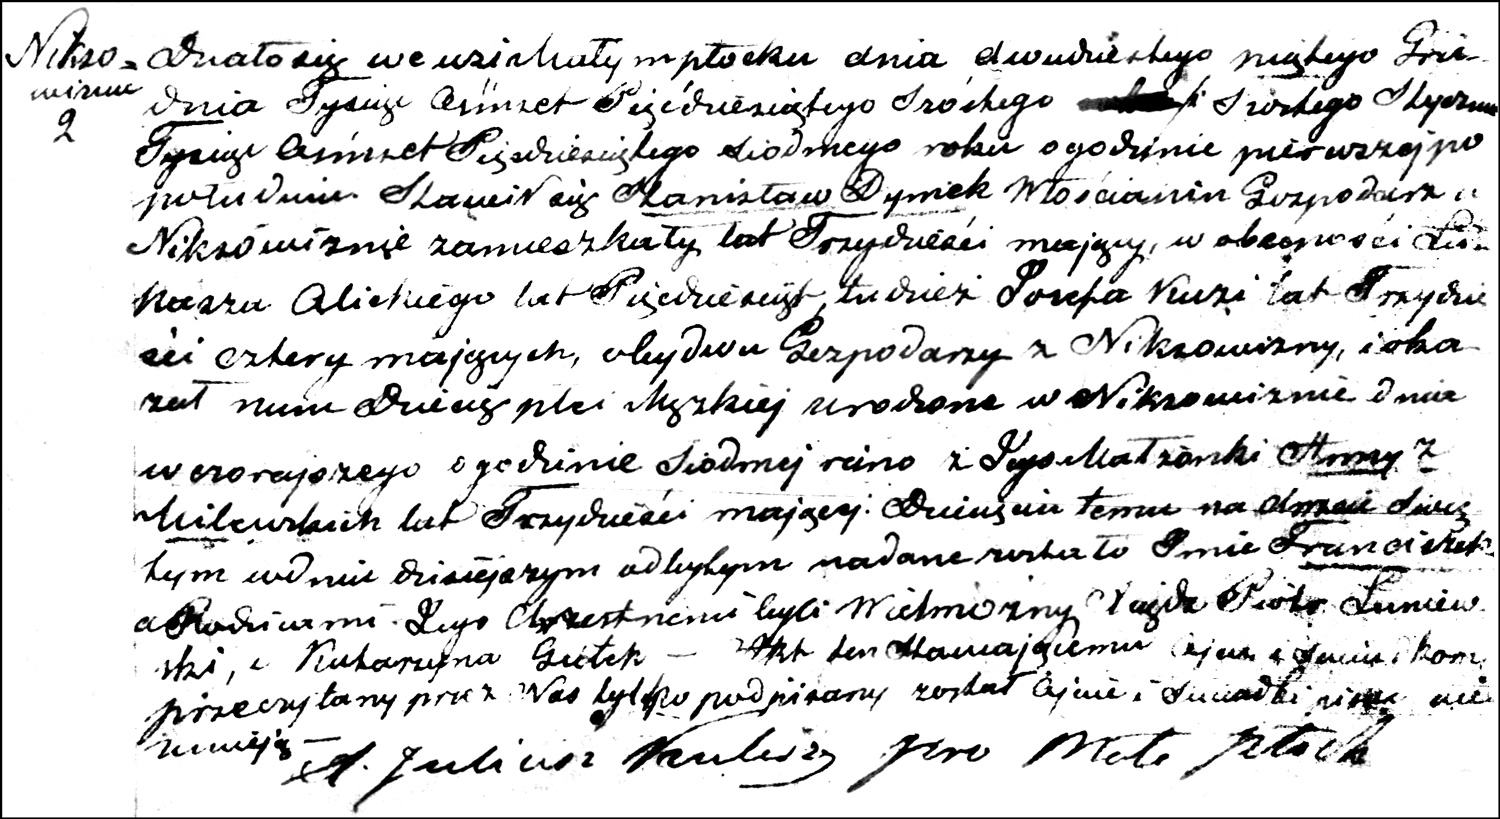 The Birth and Baptismal Record of Franciszek Dymek – 1857